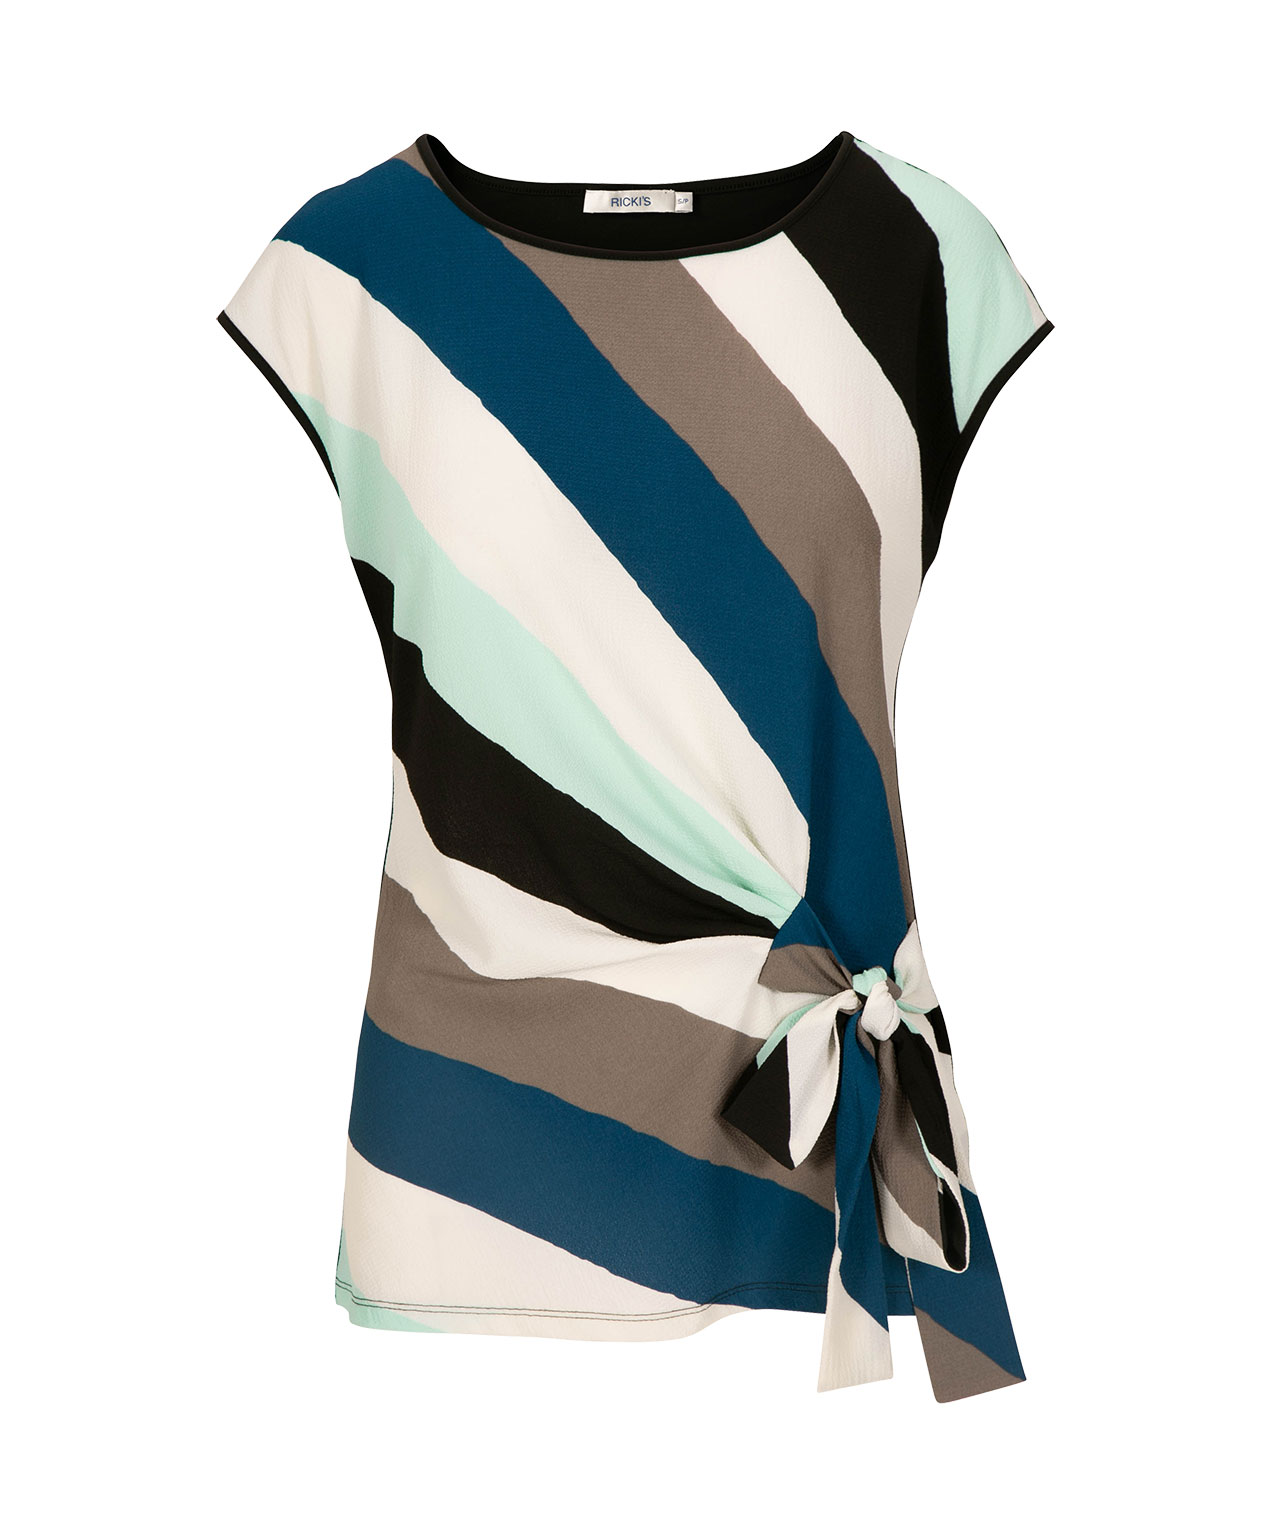 Extended Sleeve Side-Tie Top, Teal/Grey/Mint/Black, hi-res